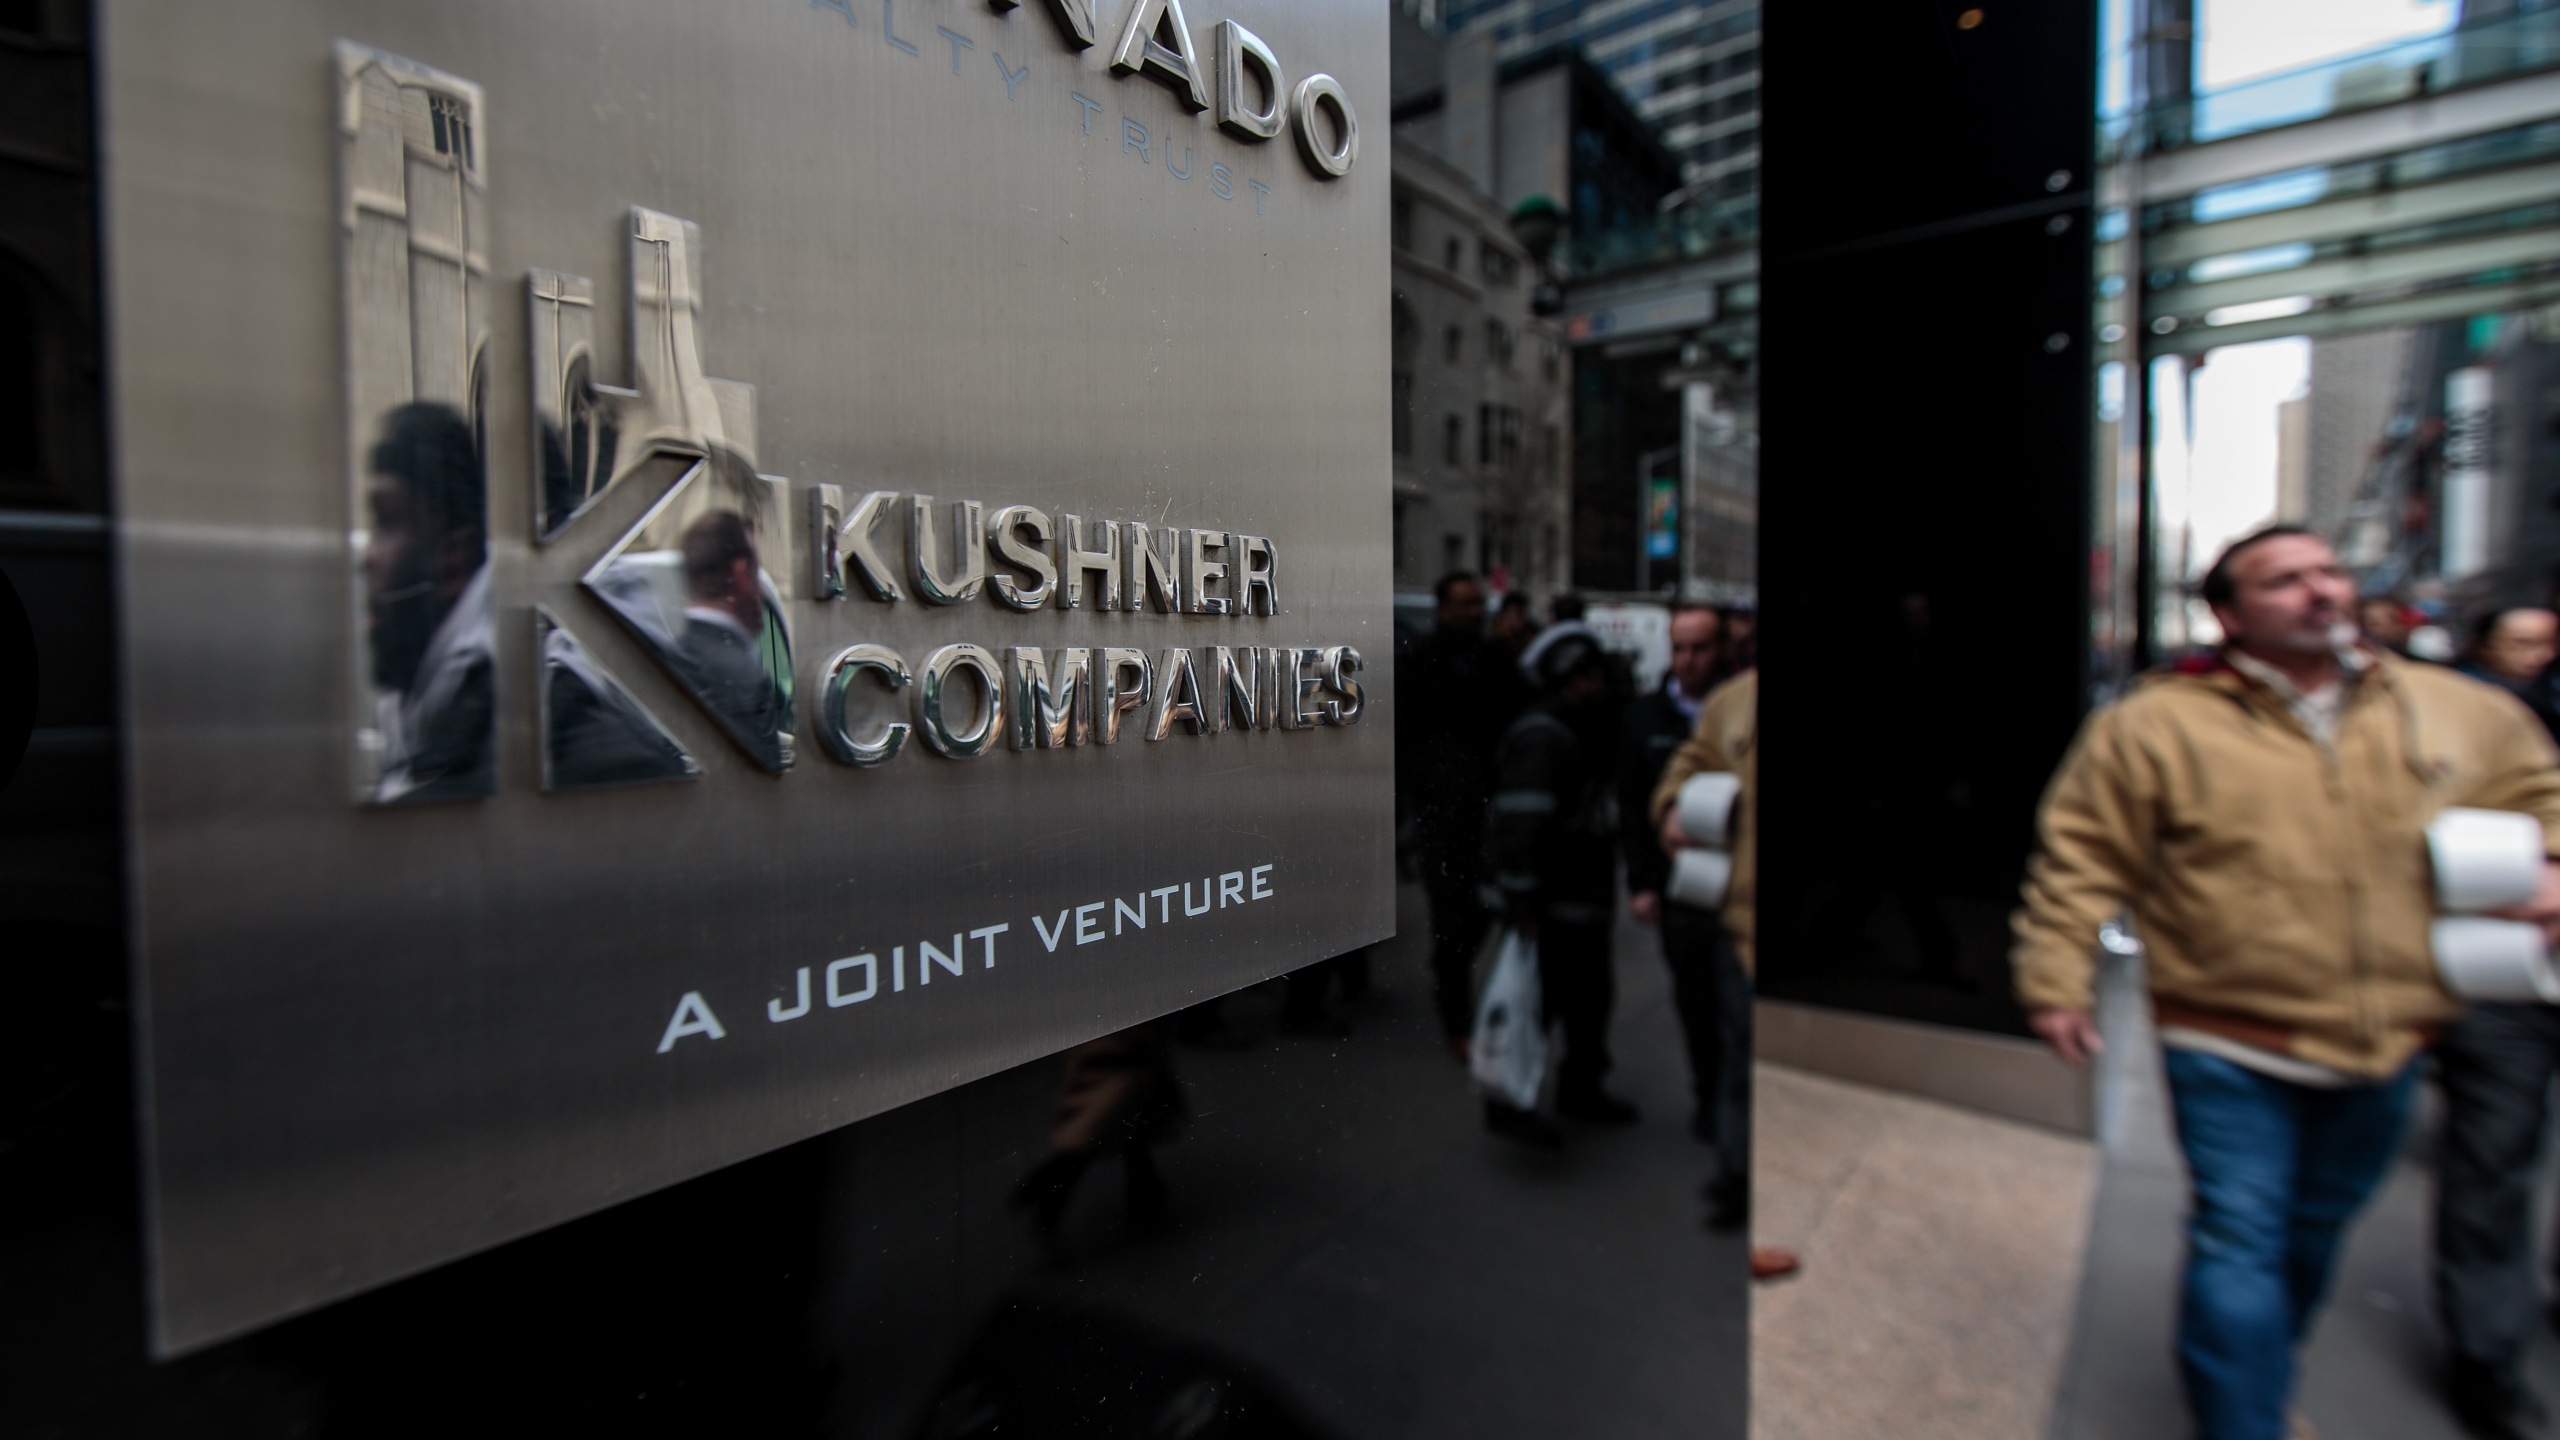 A Kushner Companies logo is visible near an entrance to the Kushner Companies' flagship property 666 Fifth Avenue in Midtown Manhattan, on March 6, 2018. (Credit: Drew Angerer/Getty Images)